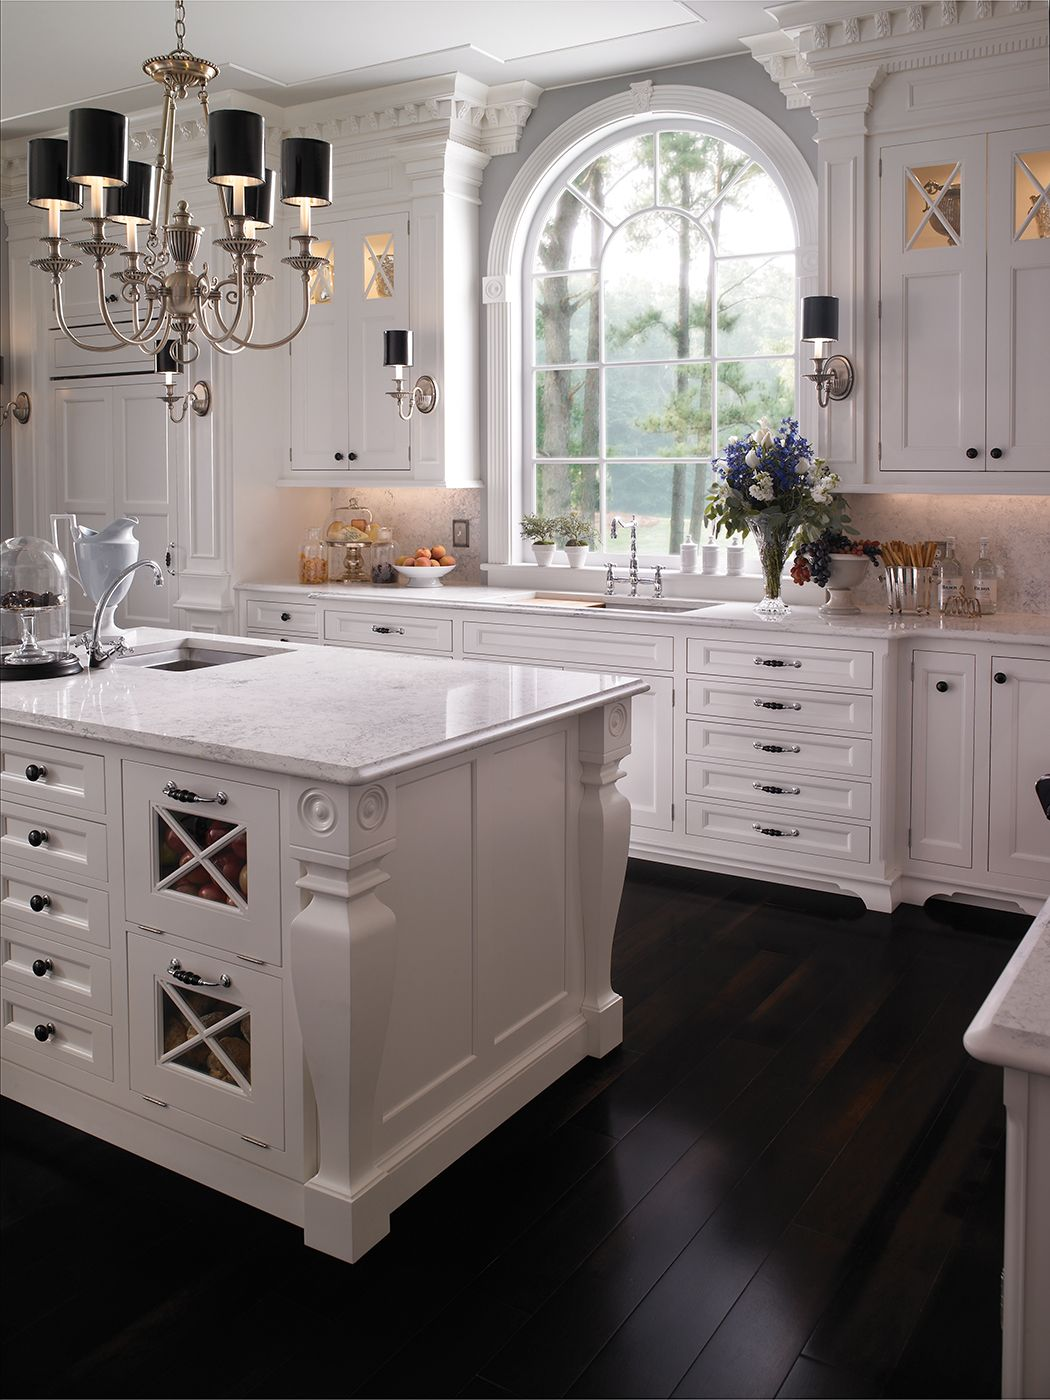 Traditional Southampton kitchen by #WoodMode, shown in Nordic White ...